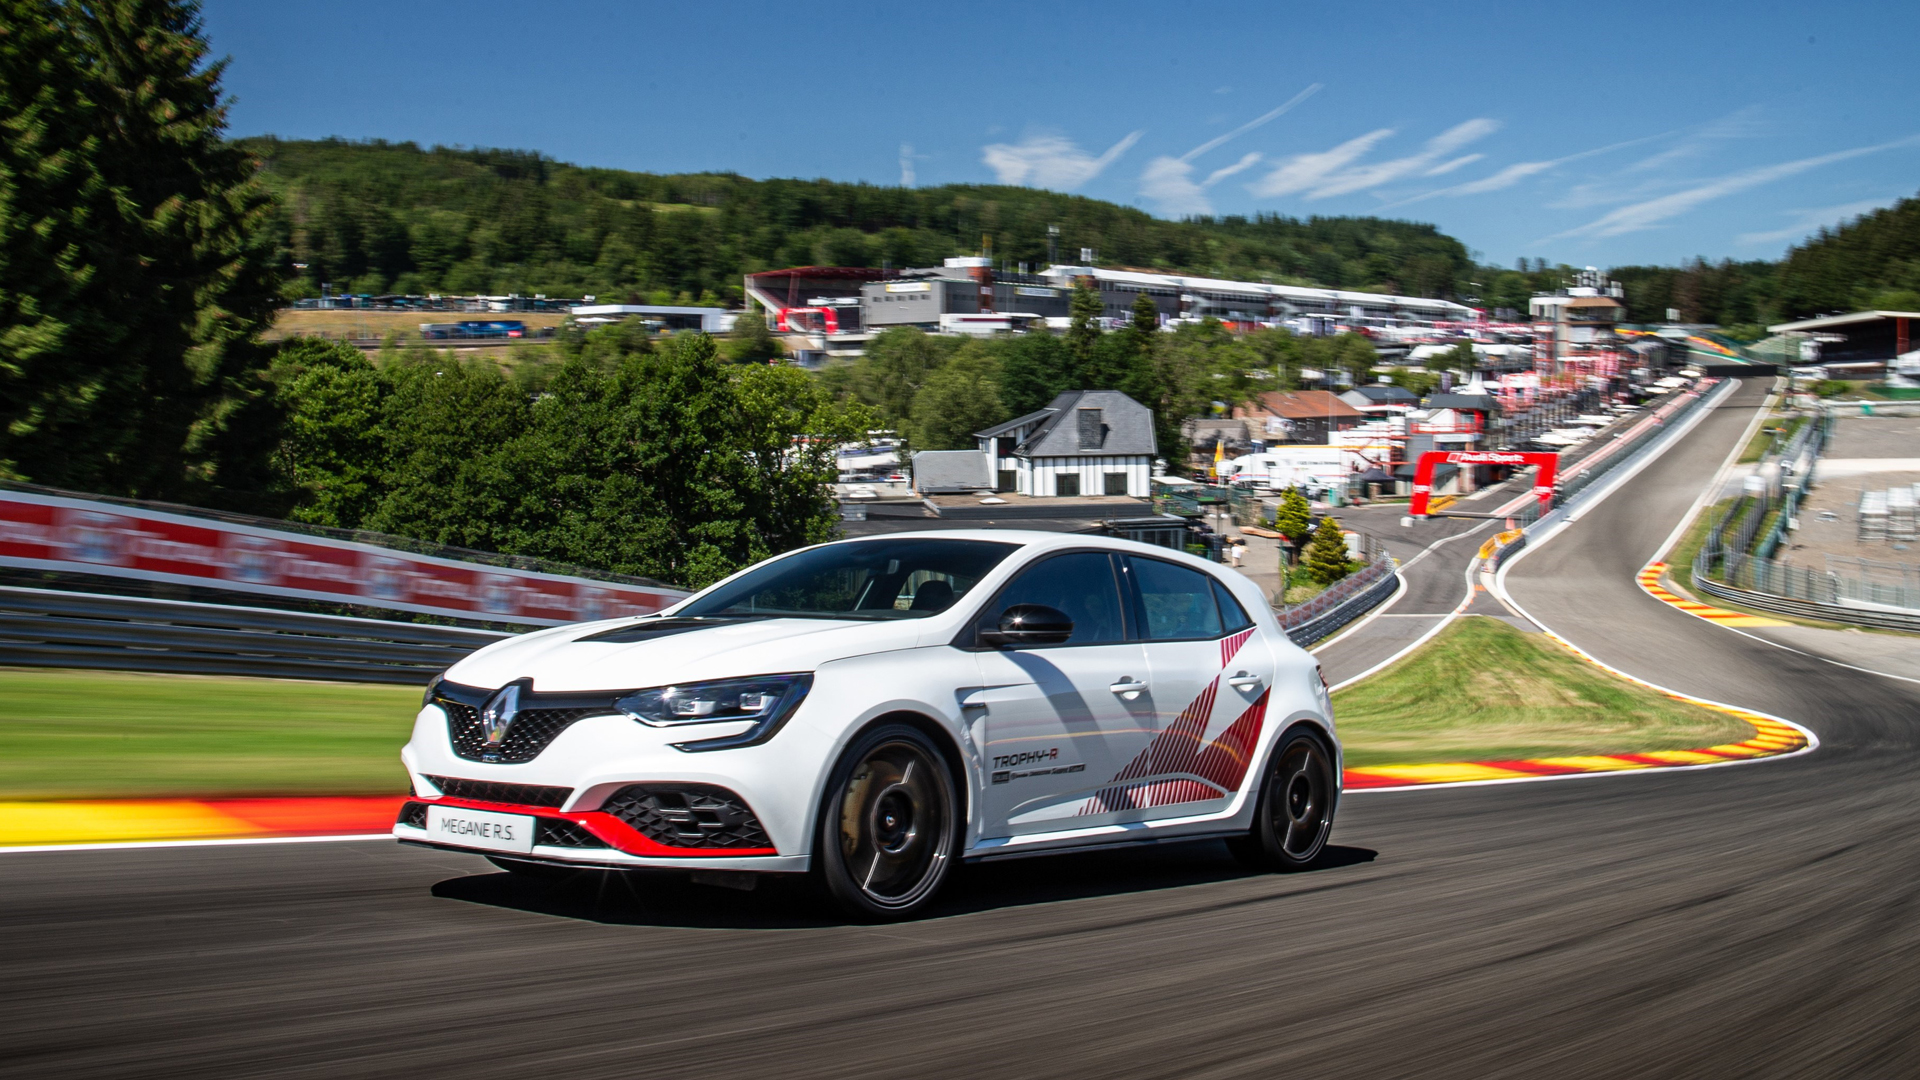 RENAULT MÉGANE R.S. TROPHY-R SETS NEW SPA-FRANCORCHAMPS LAP RECORD 240719 (LEAD).jpg